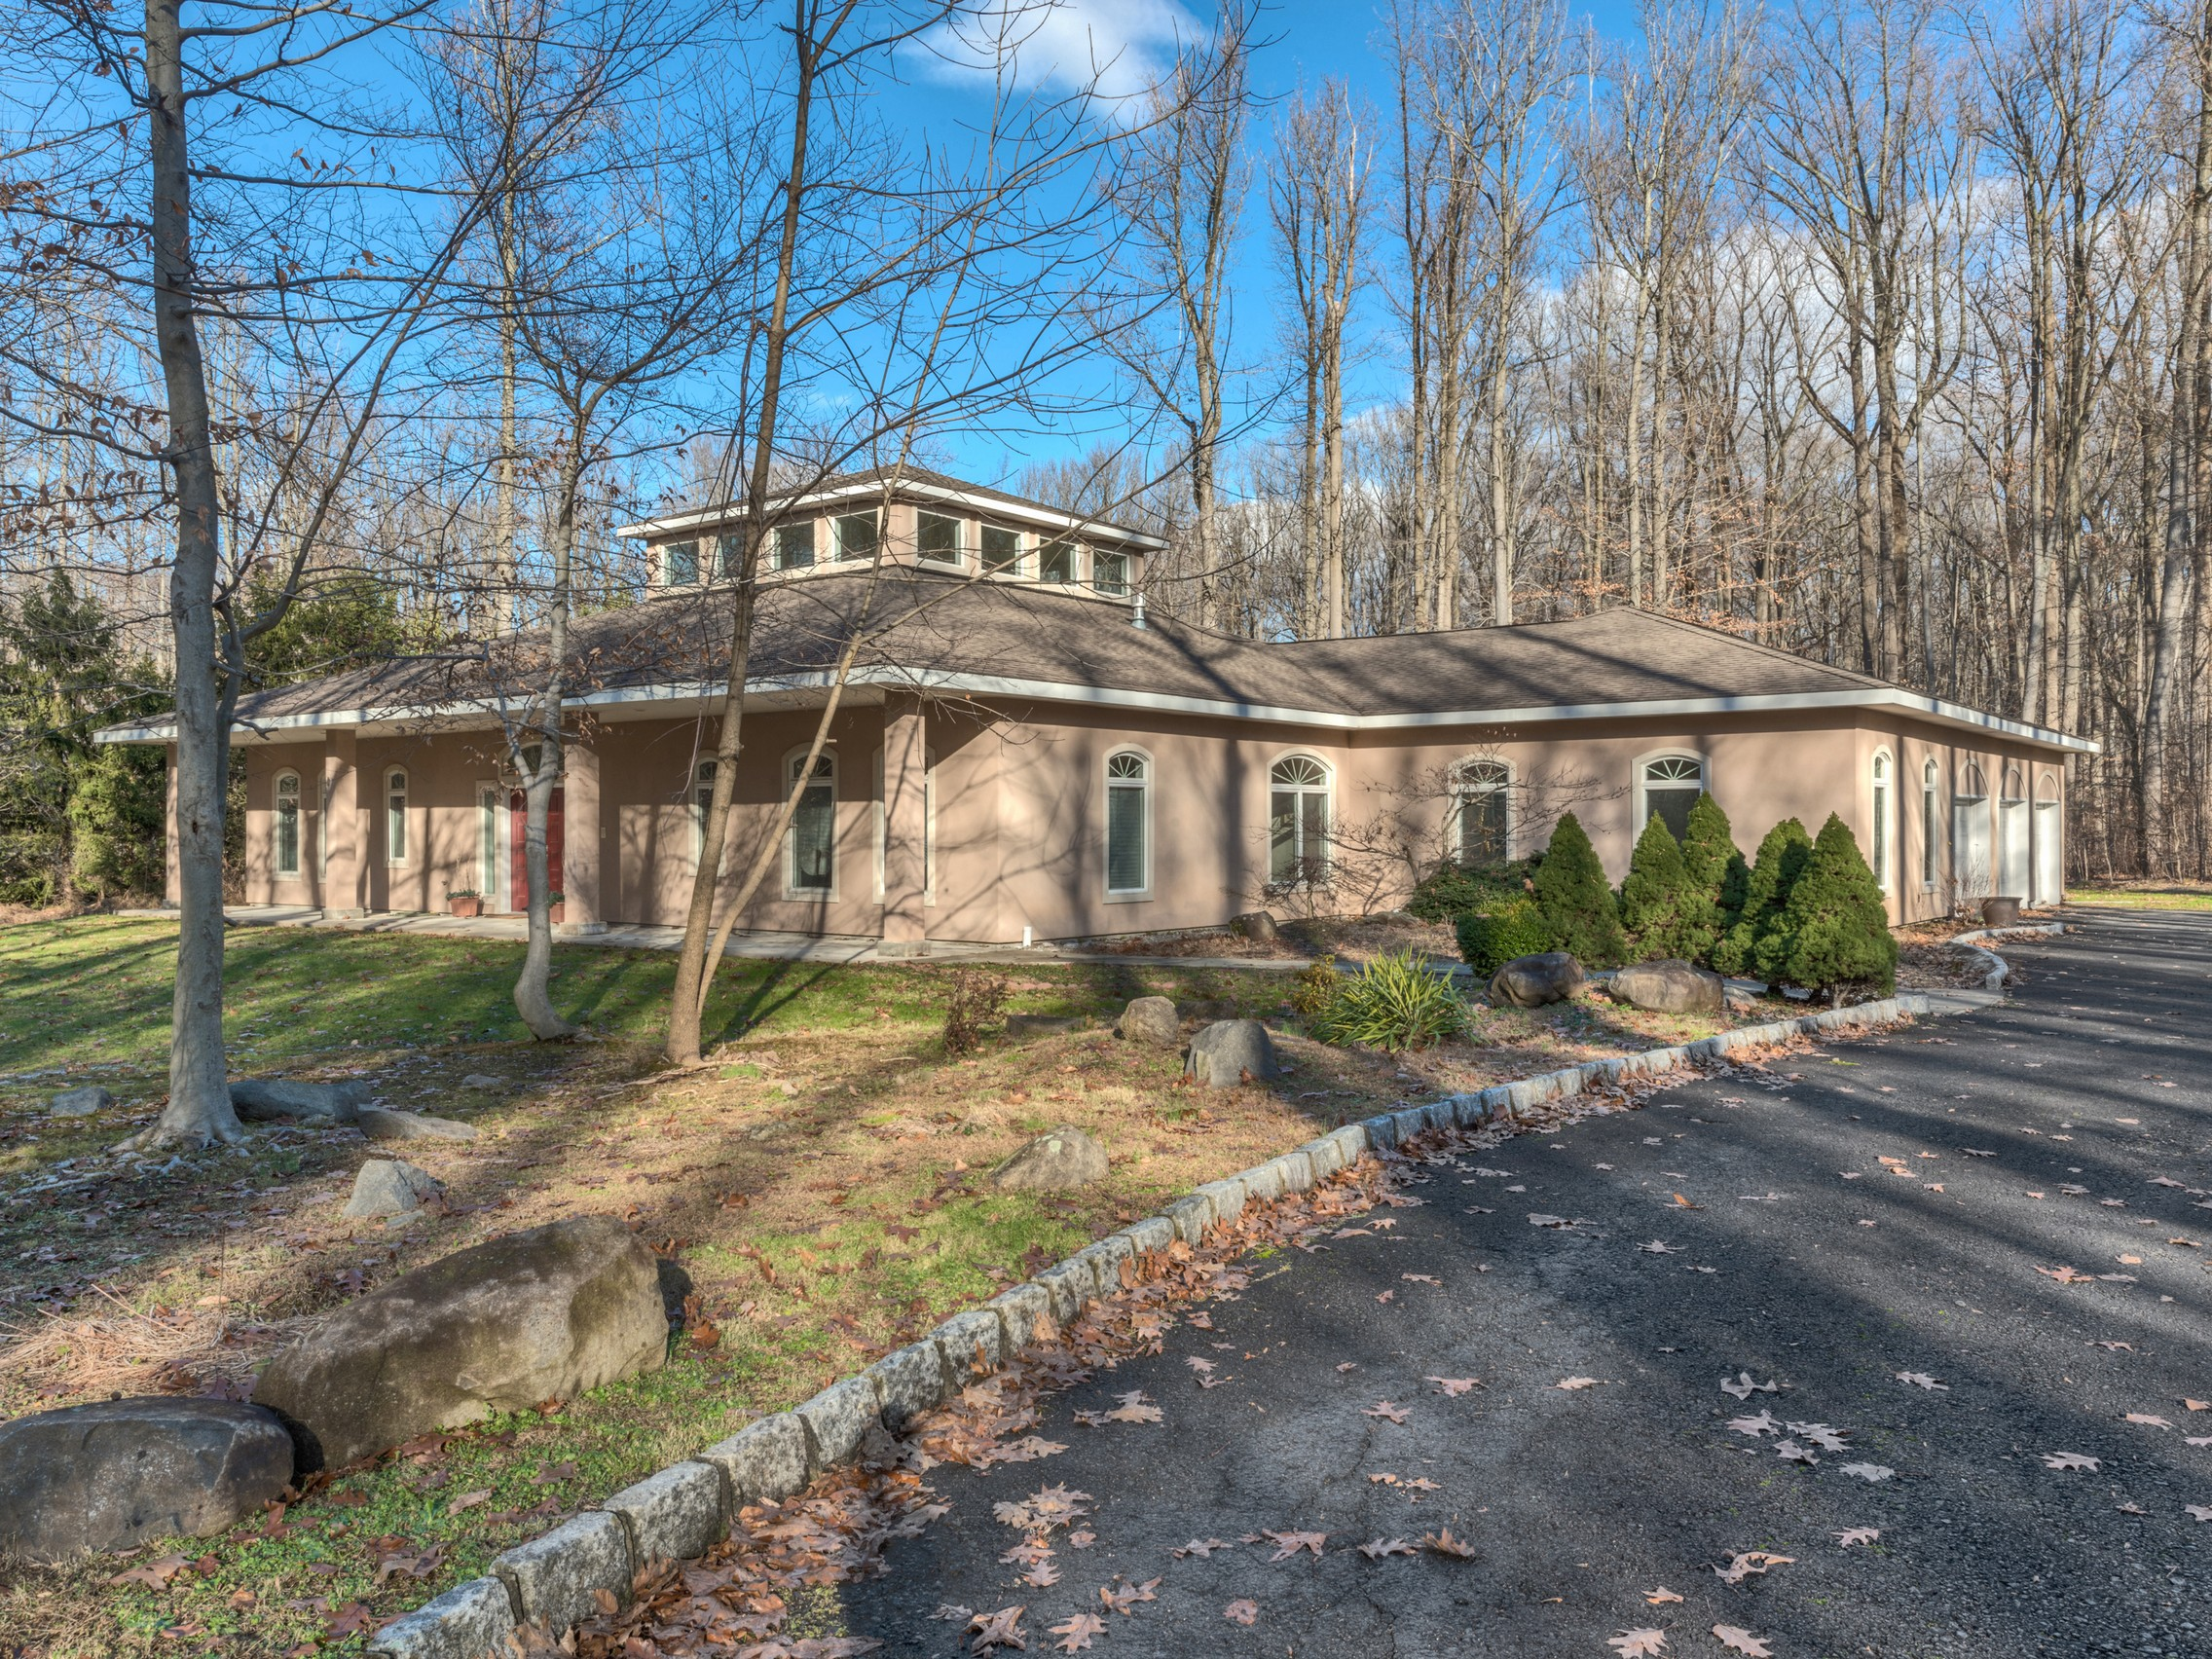 Single Family Home for Sale at Custom Contemporary 23 Heyhoe Woods Rd. Palisades, New York, 10964 United States